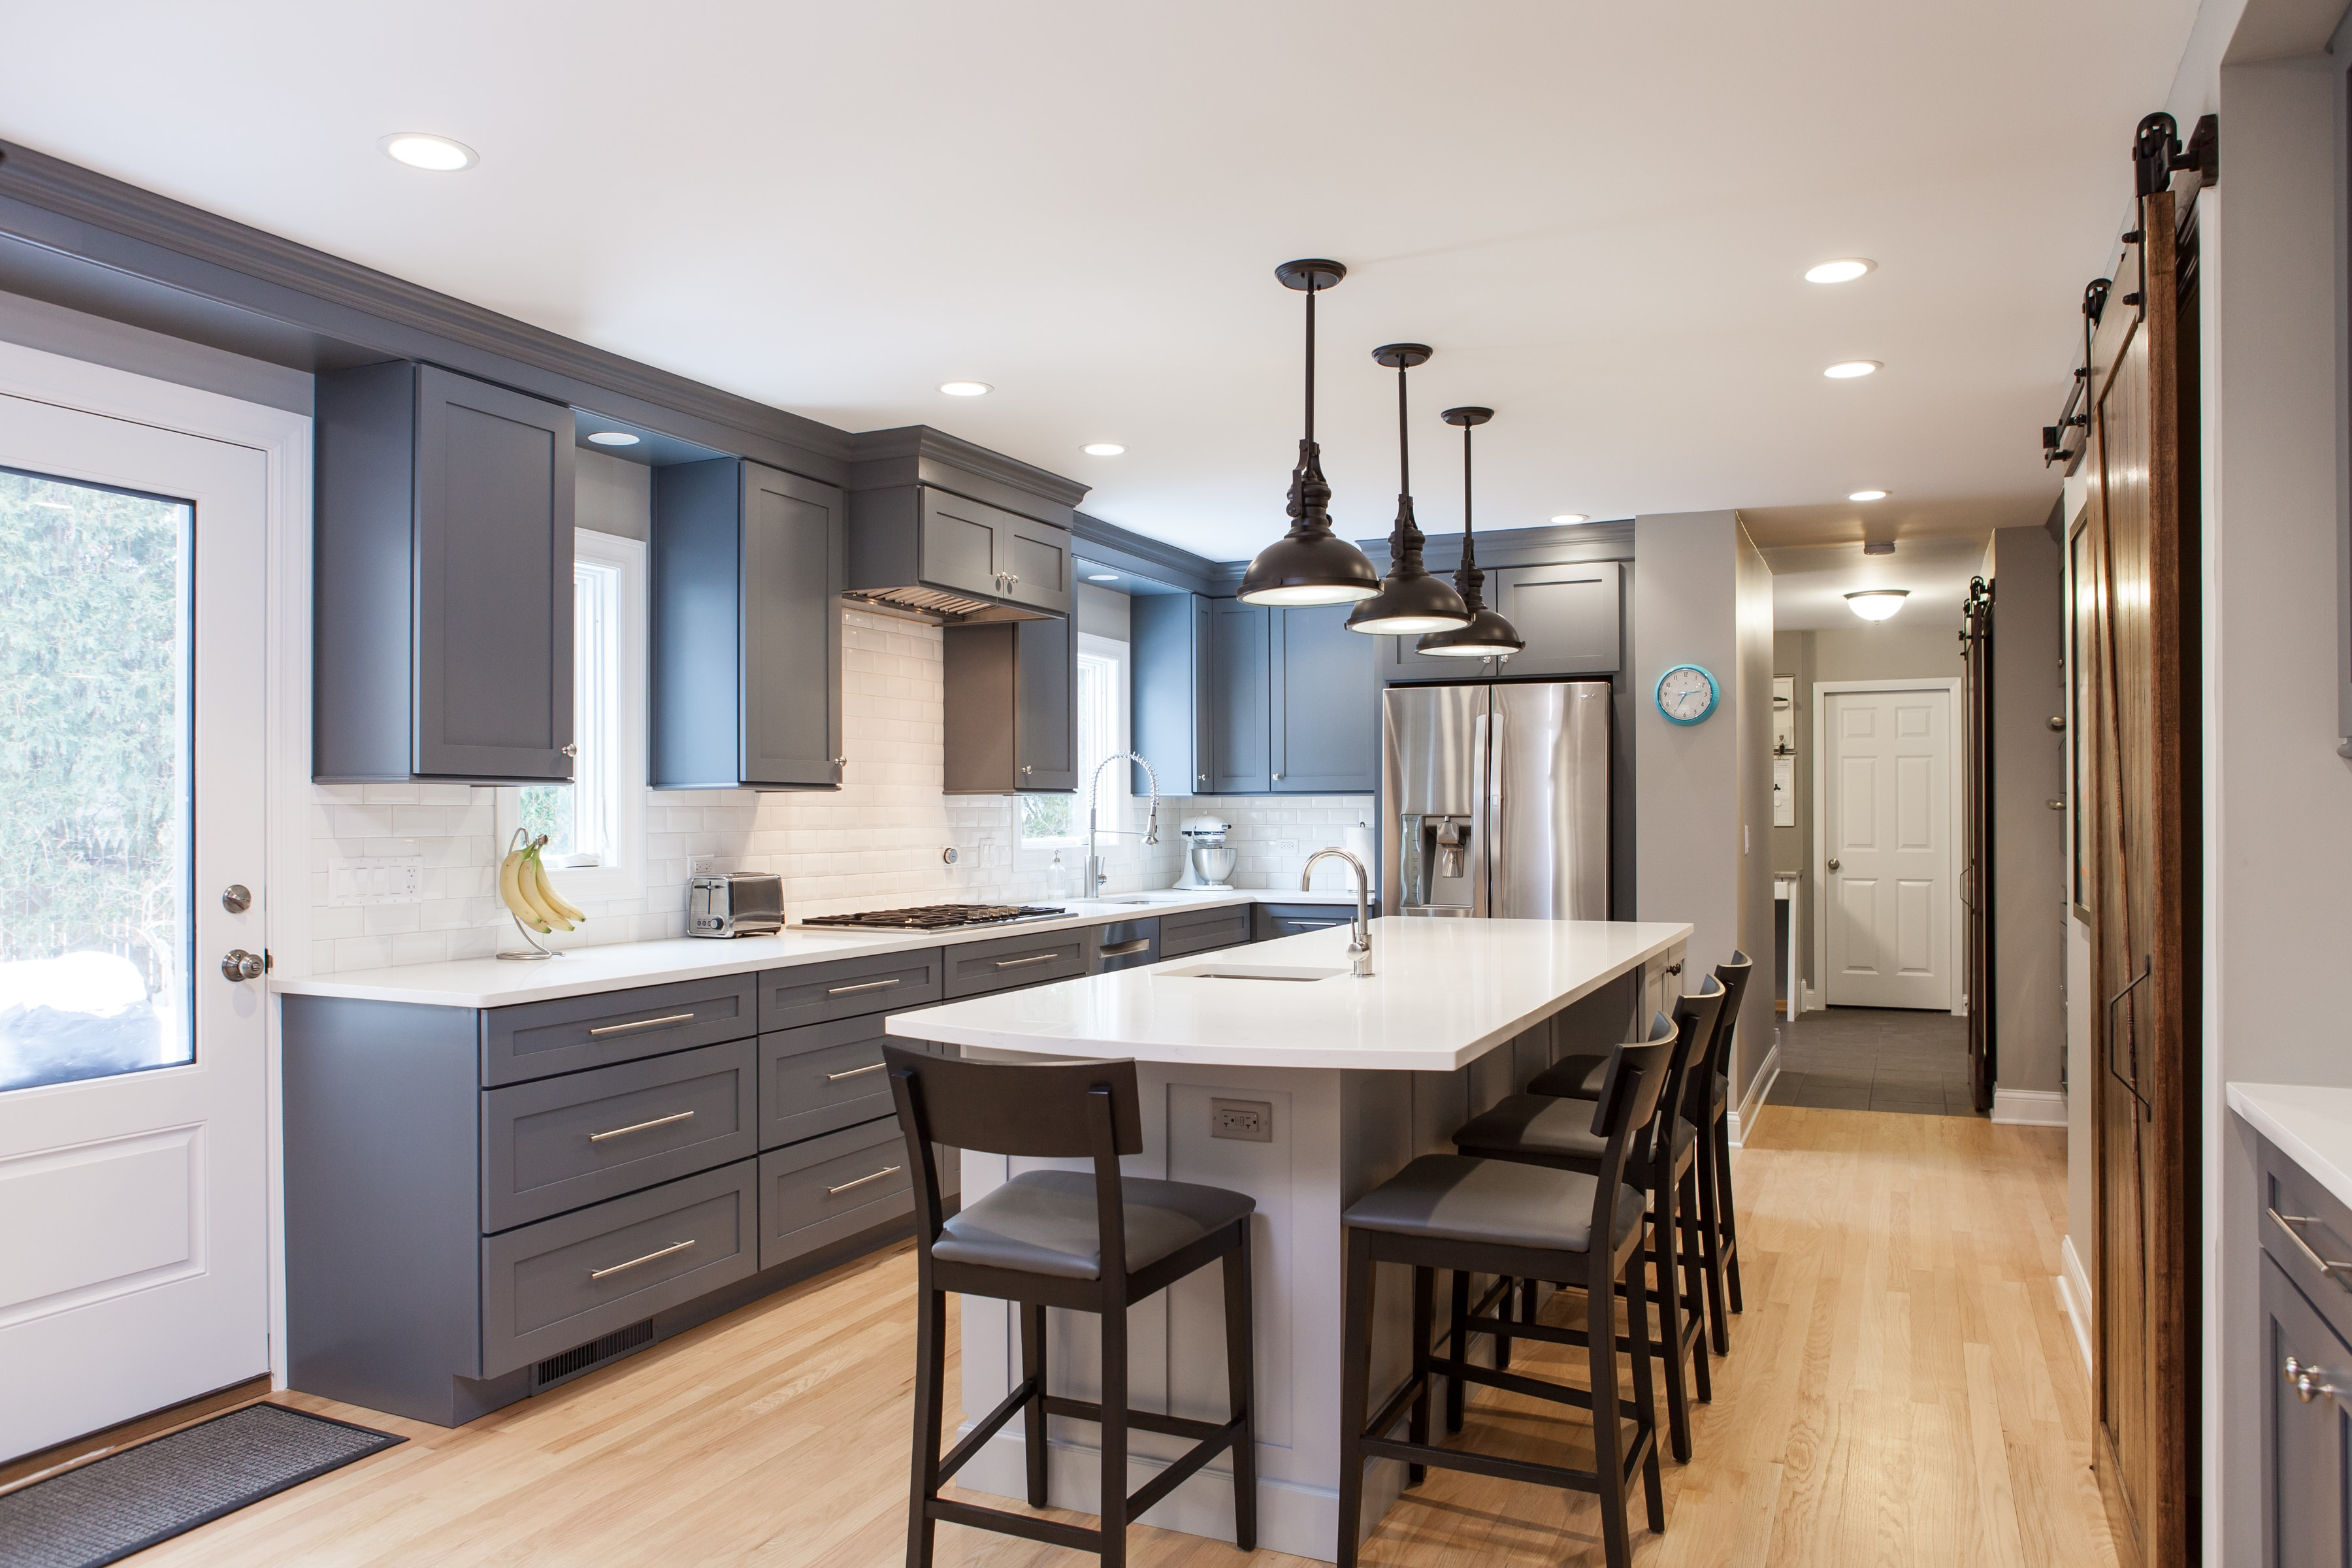 Kitchen Remodeling - Featured Project